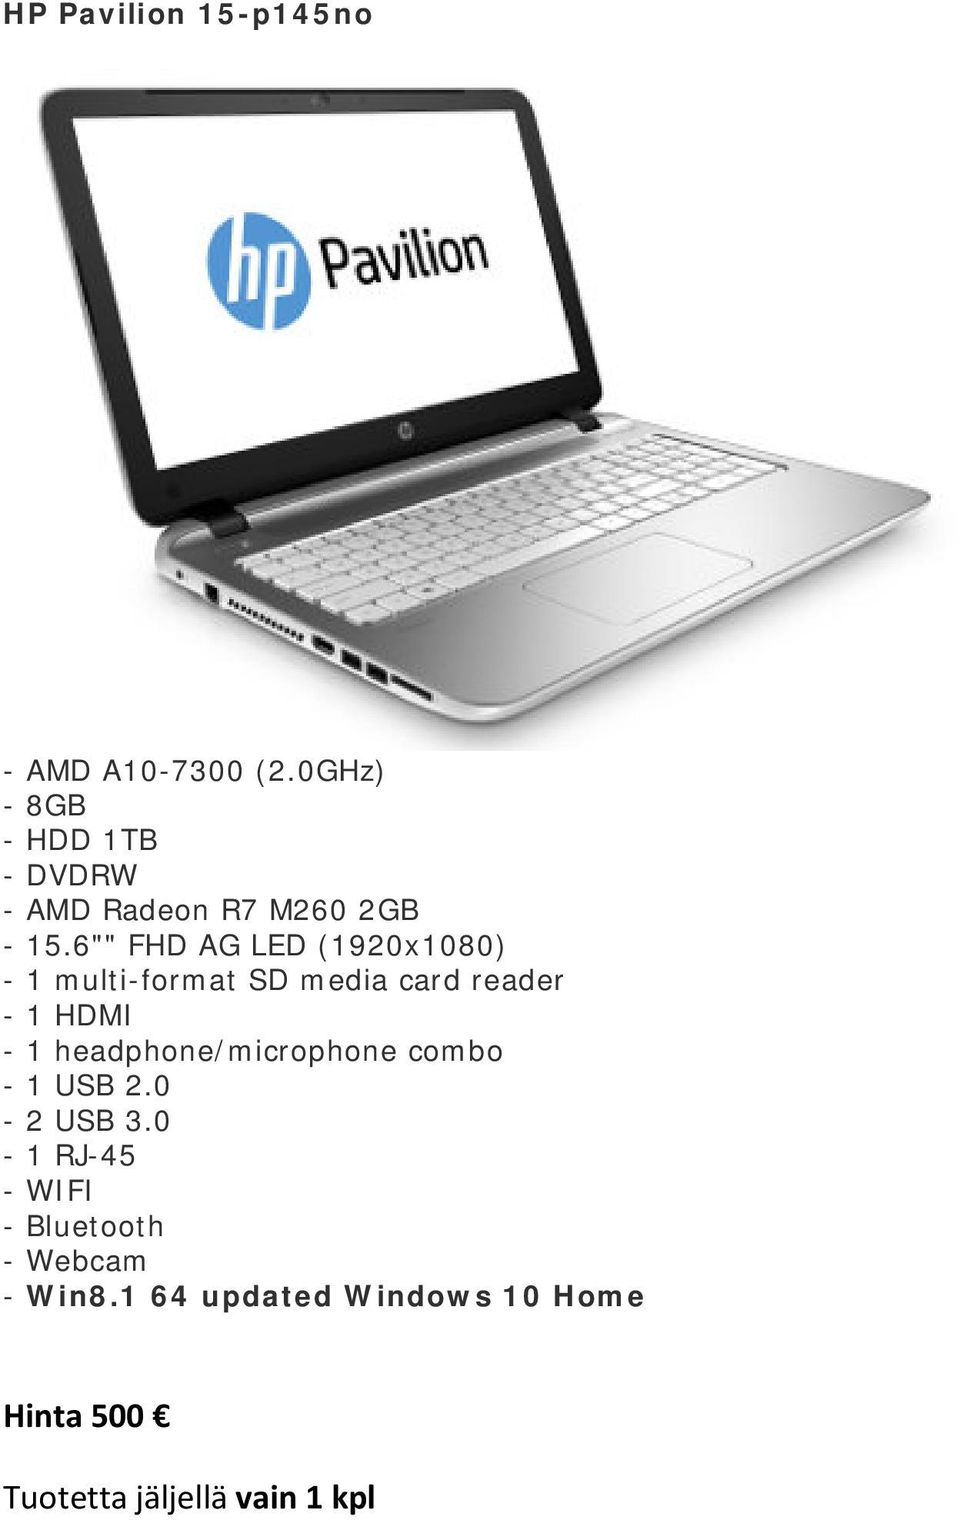 "6"""" FHD AG LED (1920x1080) - Win8."